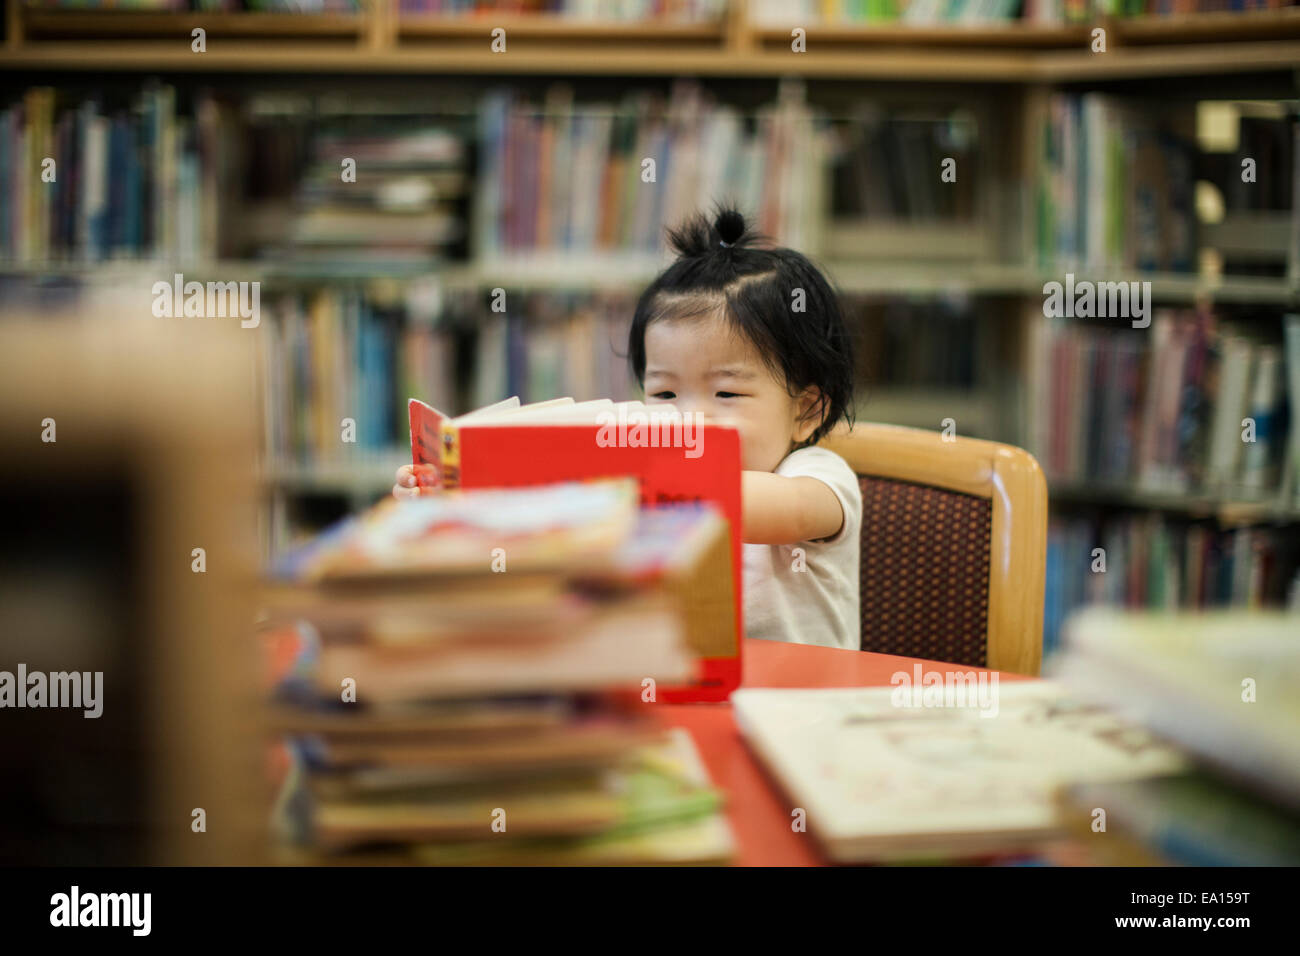 One year old baby girl reading book in library - Stock Image